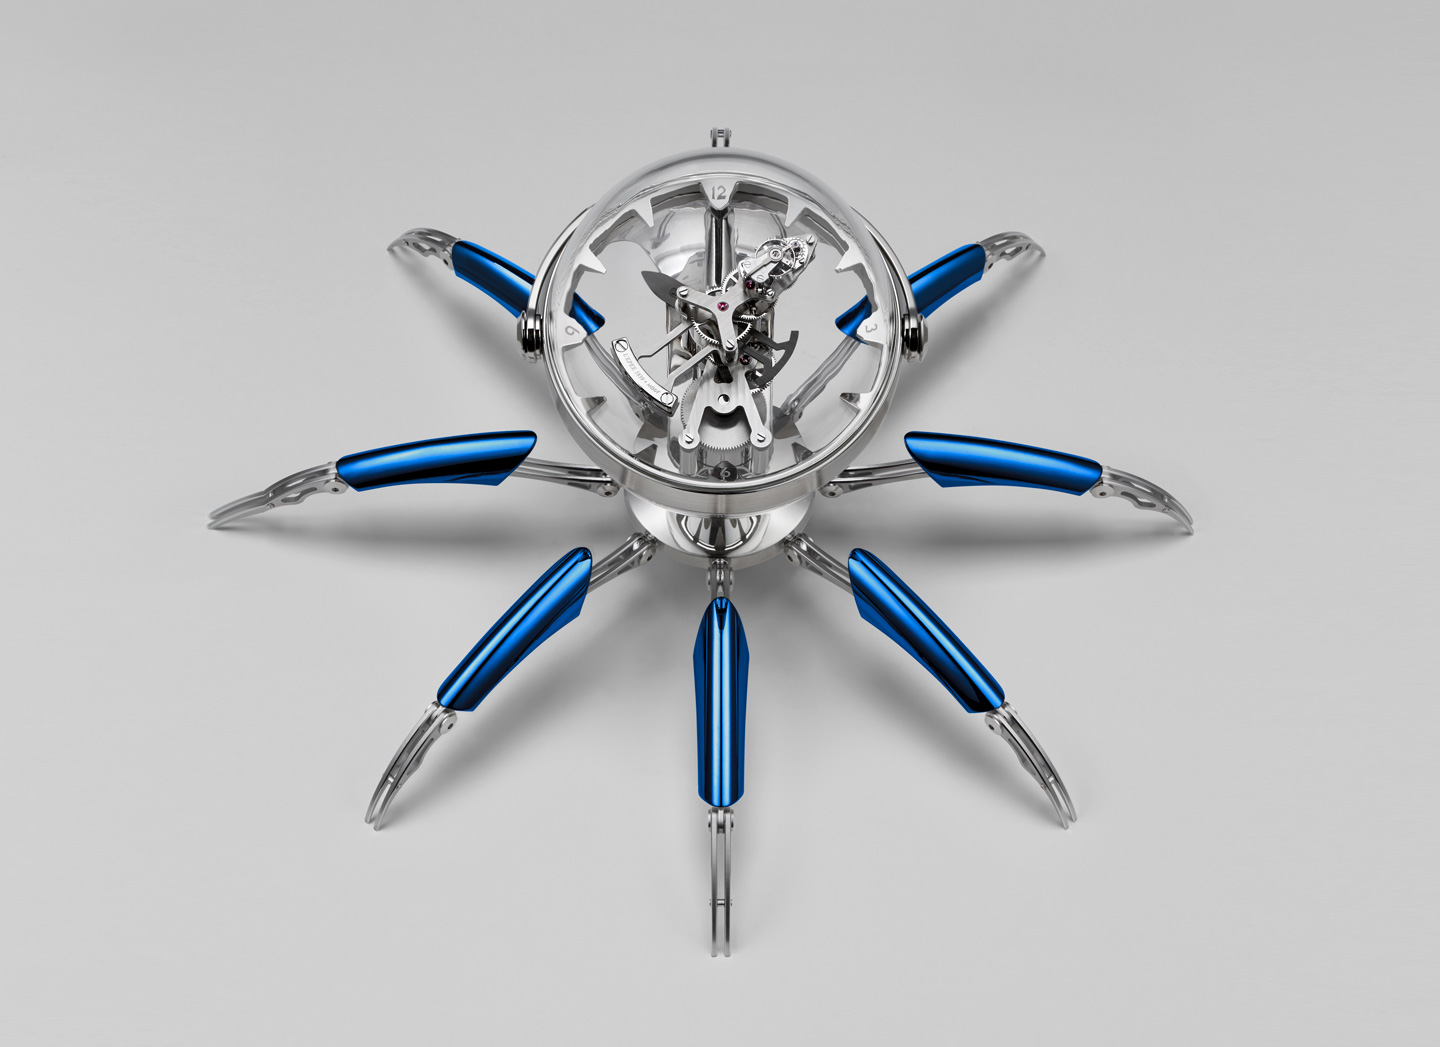 Splurge: This RM152,442 MB&F clock has legs that go on for days